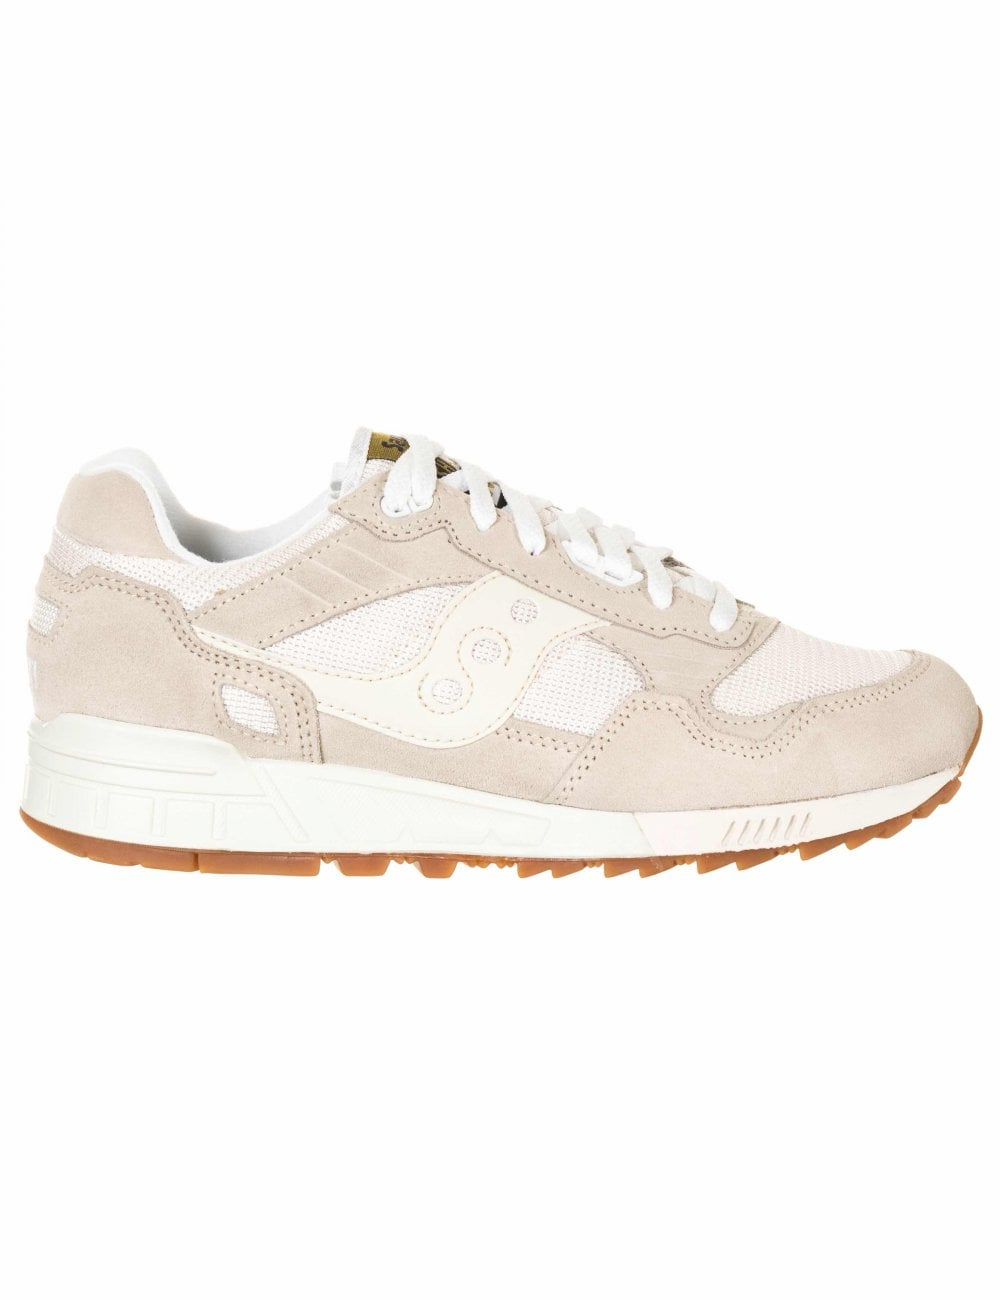 the best attitude f2d3b f1d11 Shadow 5000 Vintage Trainers - Tan/White